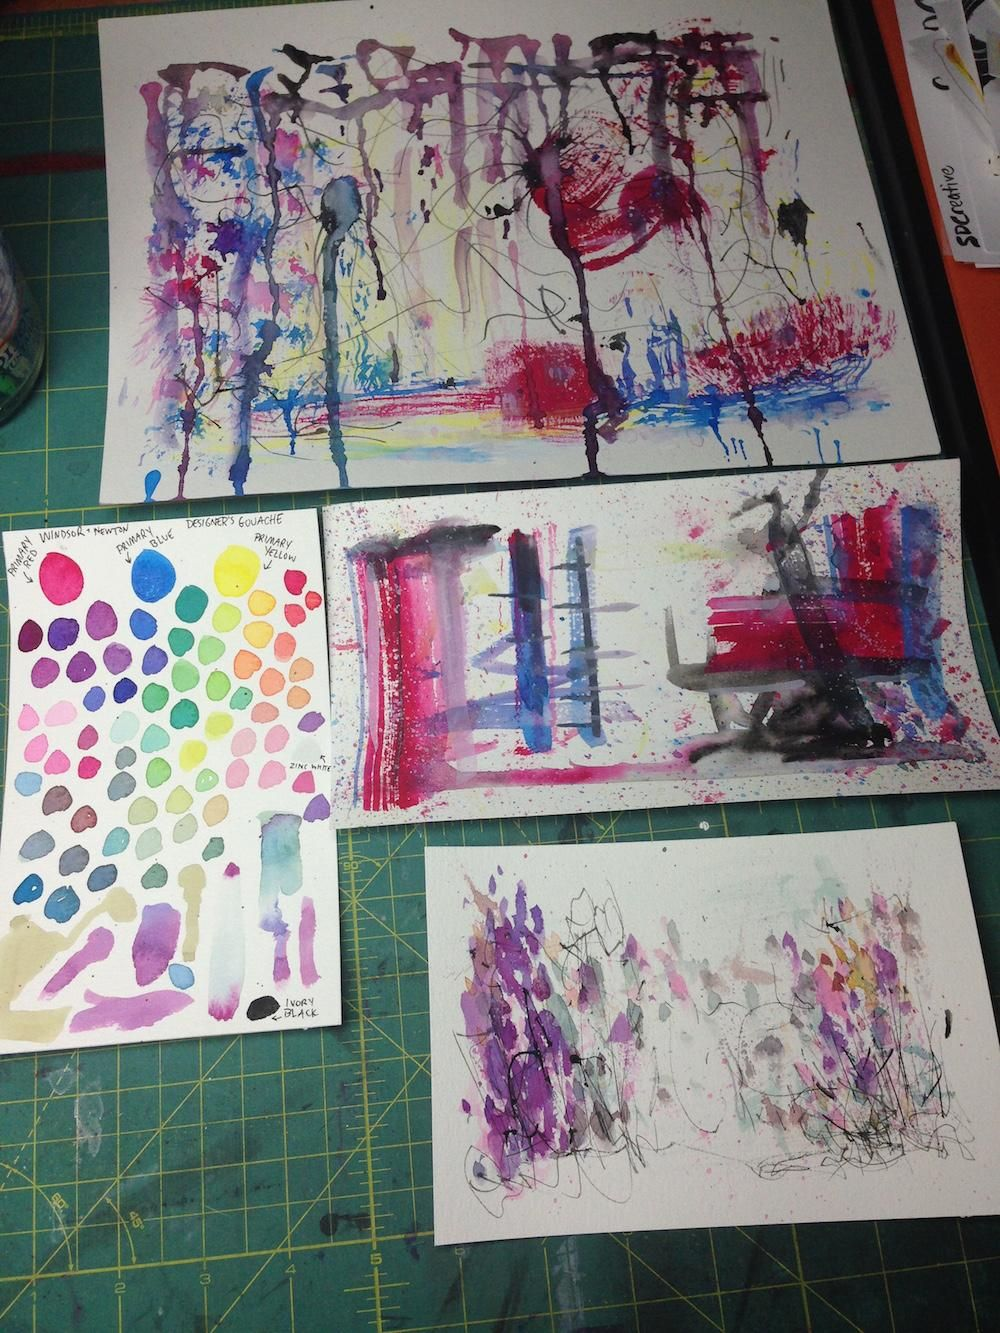 Mixing Watercolors - image 5 - student project